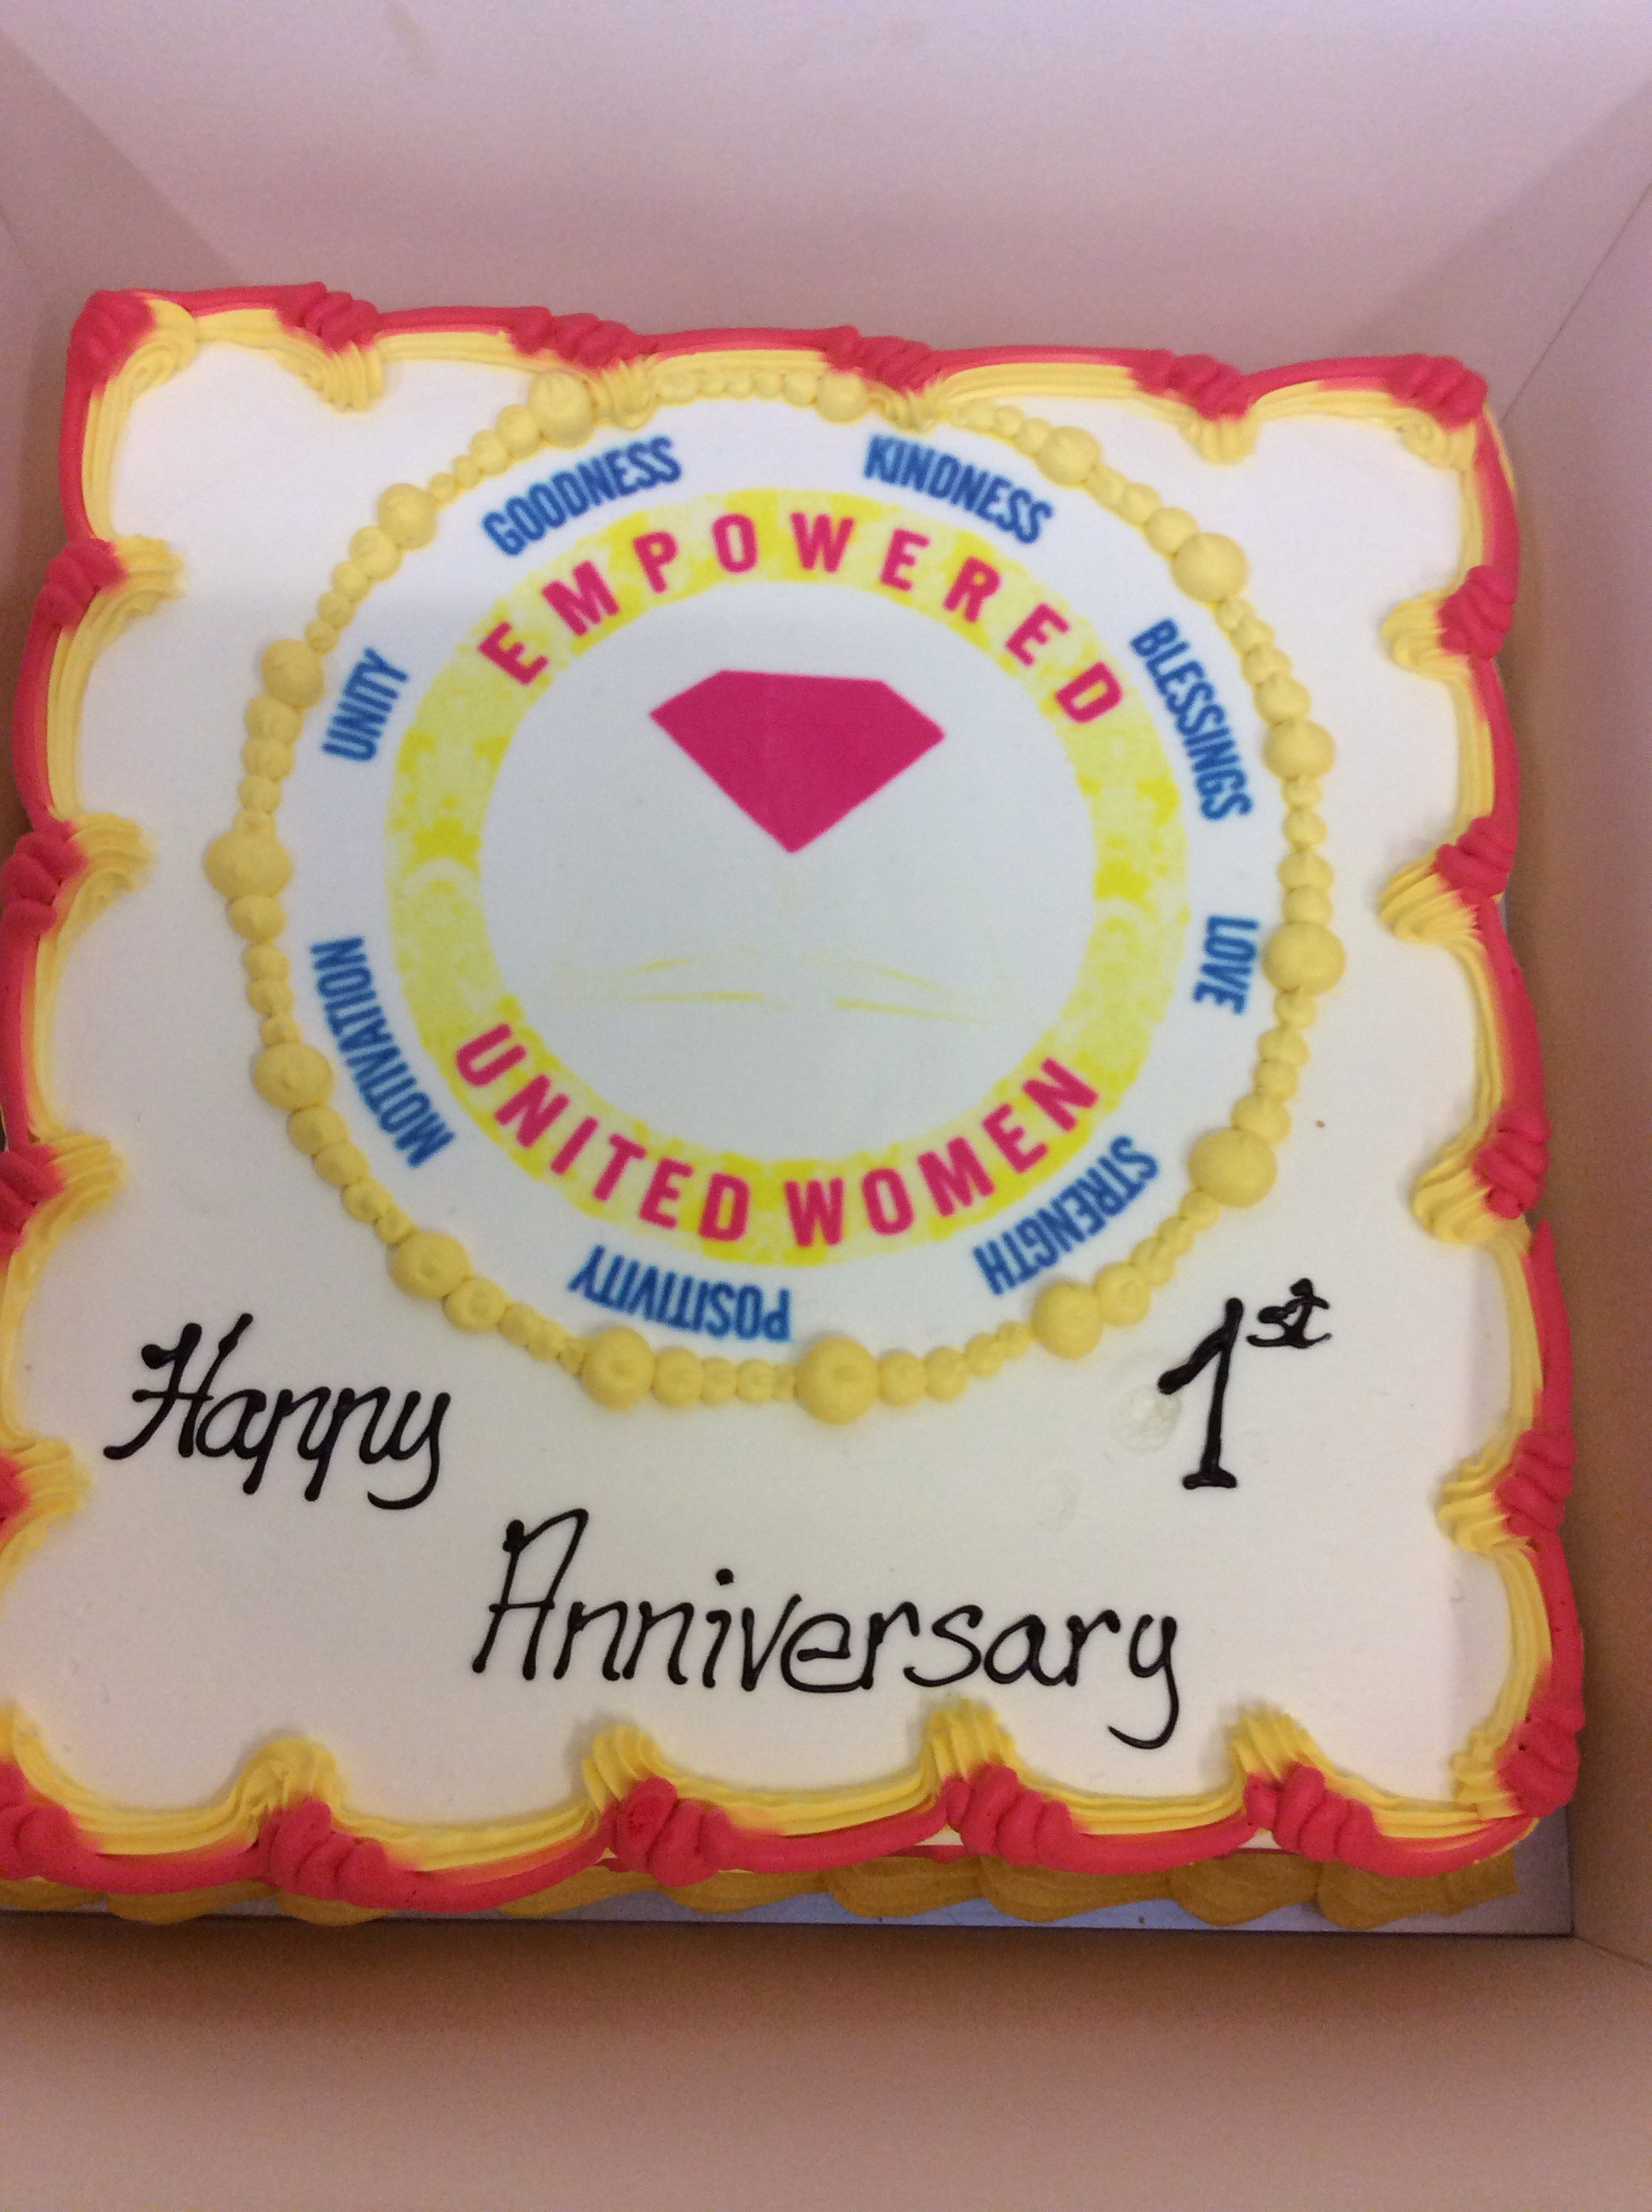 EMPOWERED UNITED WOMEN MINISTRY TURNS 1